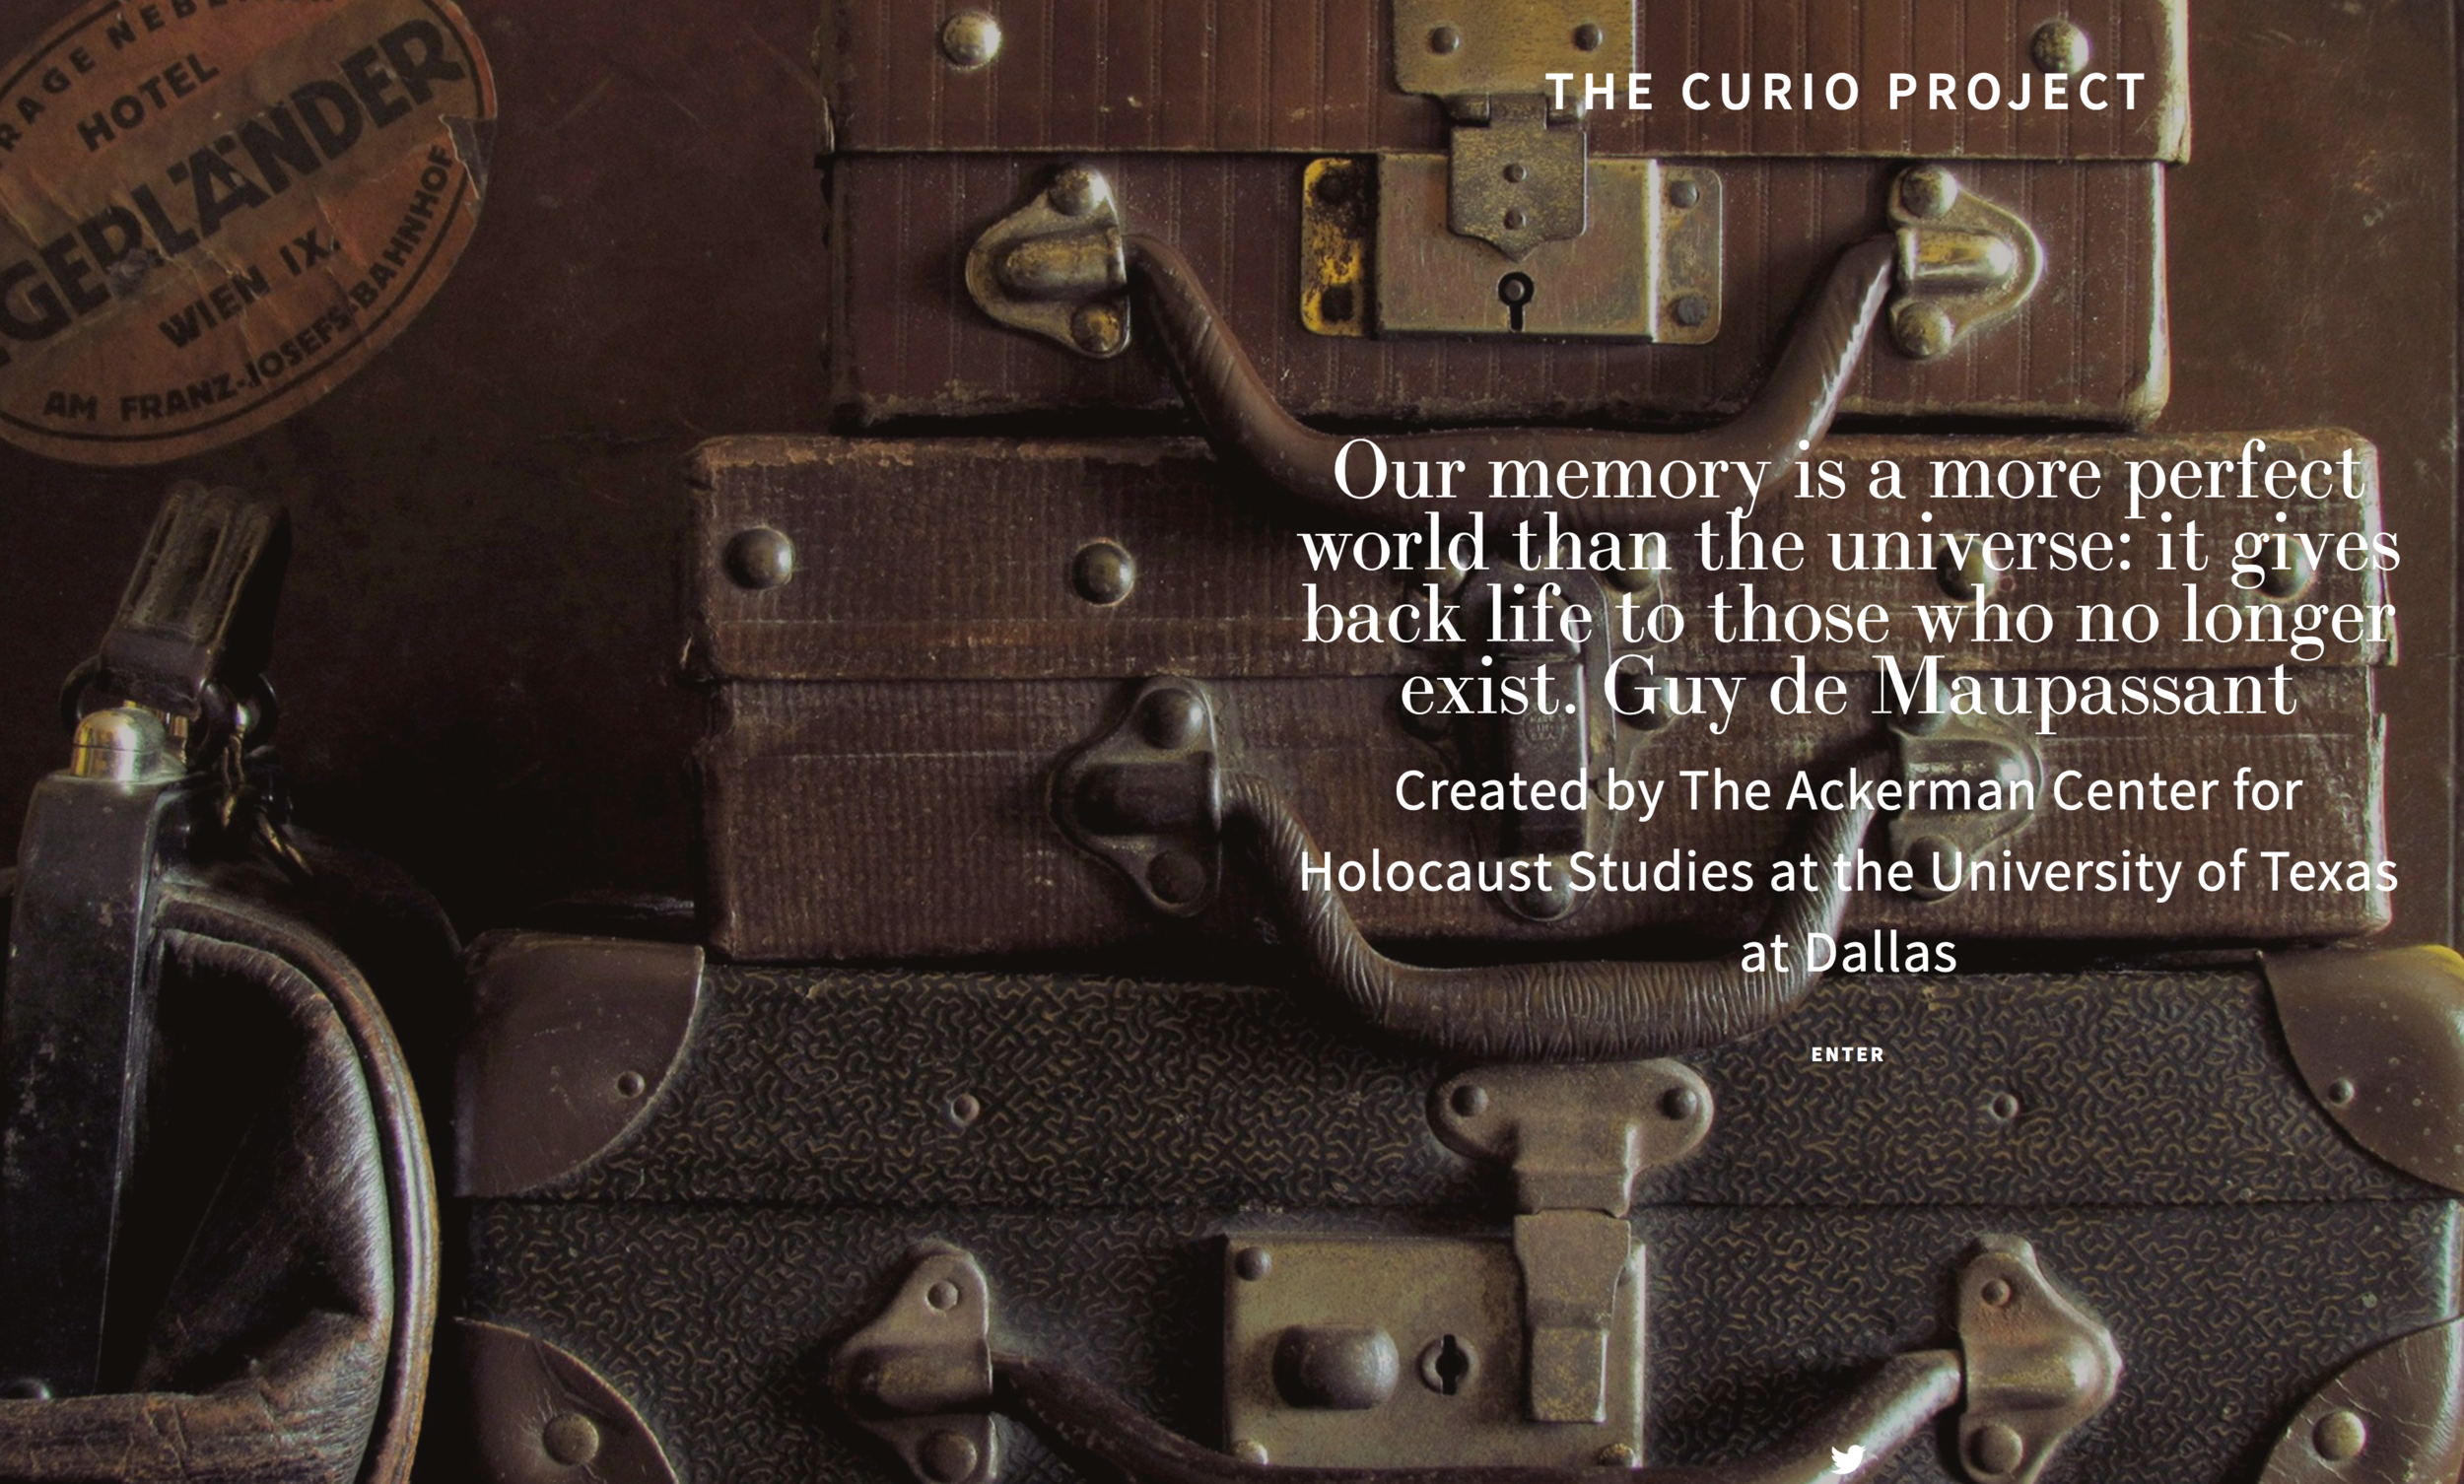 The Curio Project, thecurioproject.com